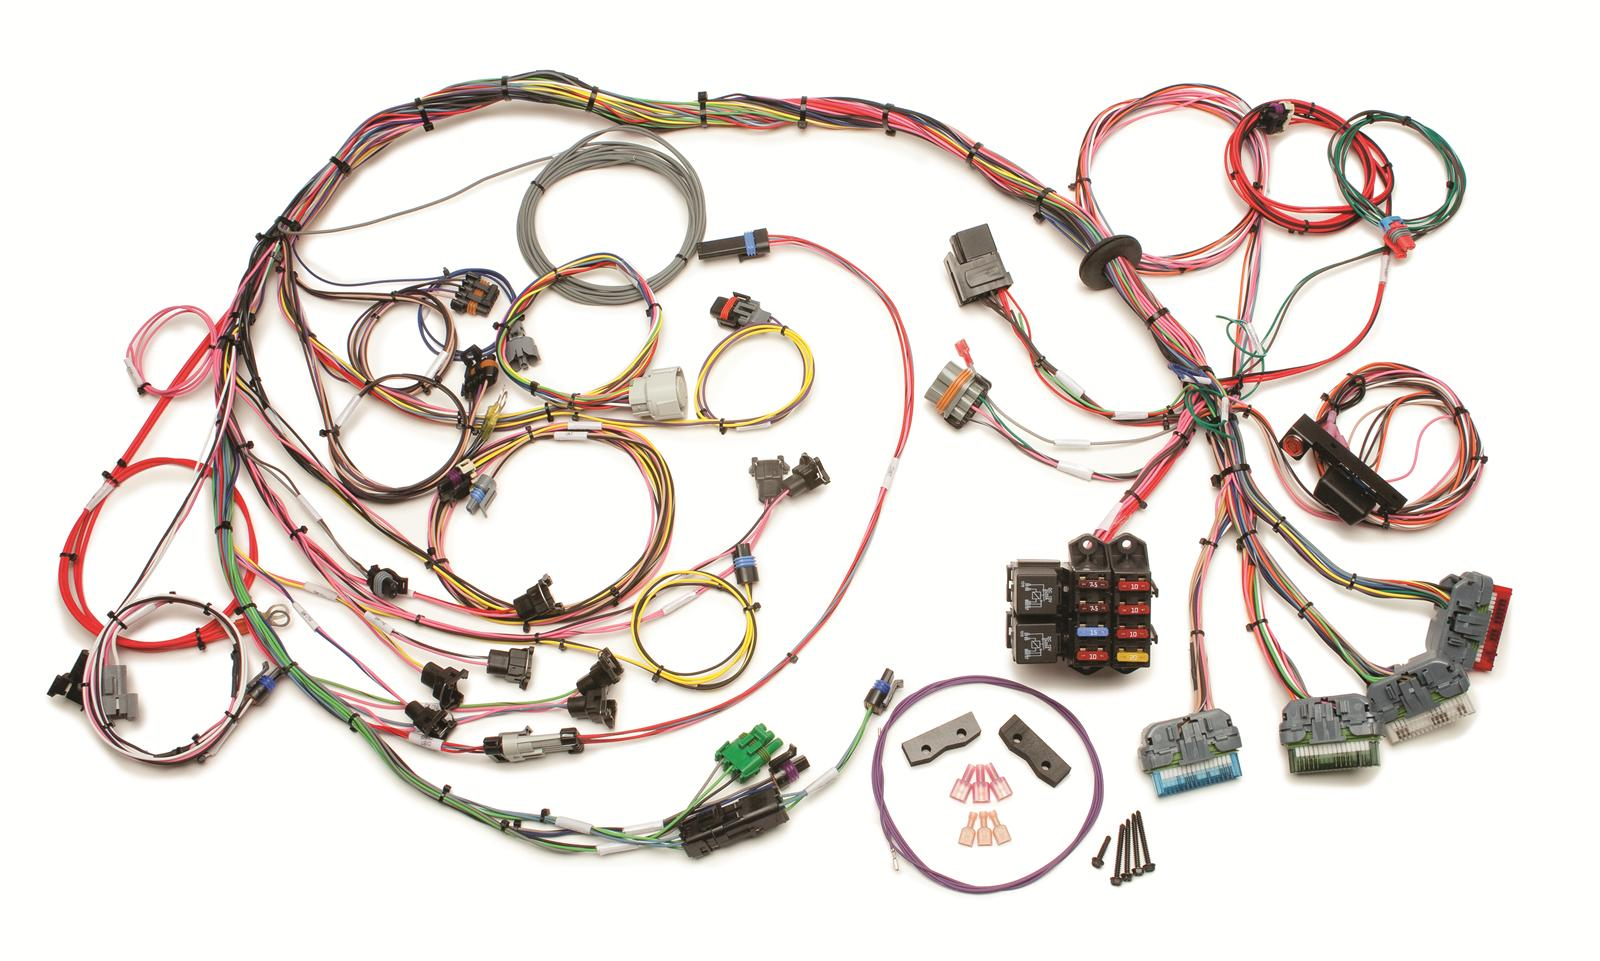 hight resolution of painless wiring harness review 30 wiring diagram images 12 circuit universal wiring harness 12 circuit universal wiring harness